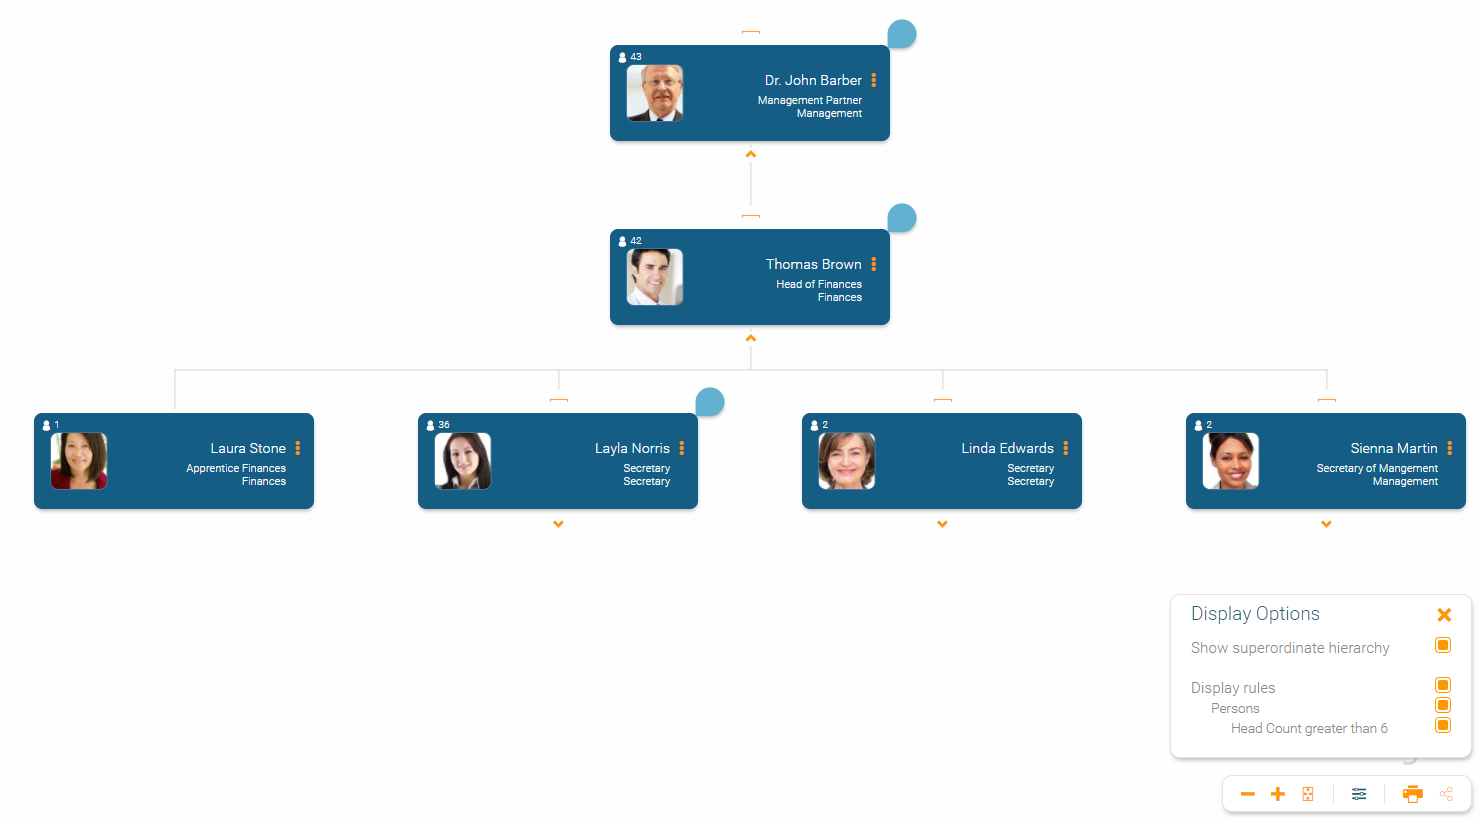 Highlight information in your org chart using display rules in orginio